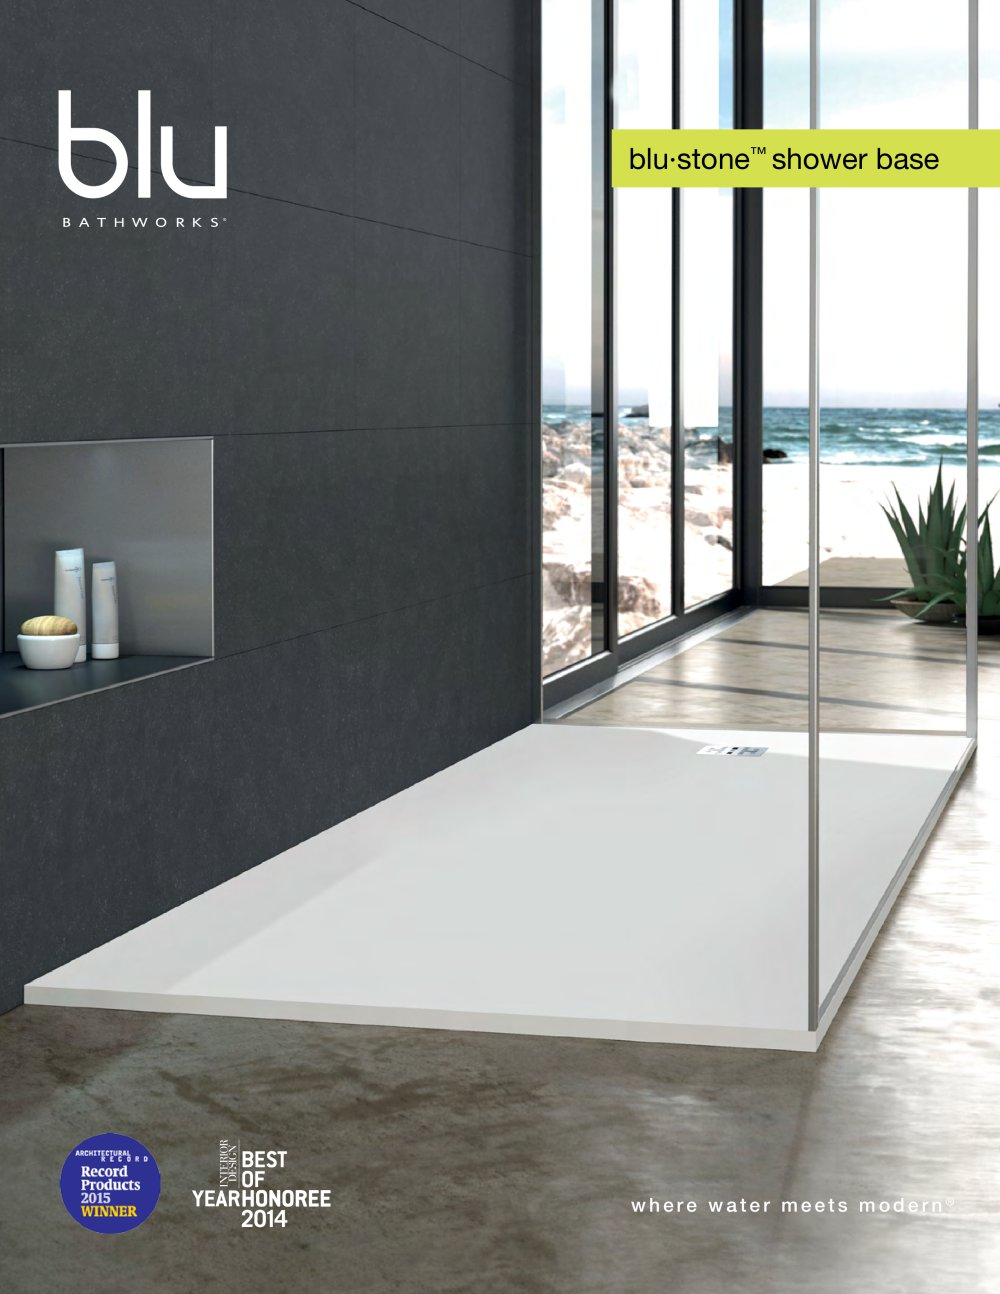 Beau Blu Bathworks Blu·stone™ Shower Base   1 / 11 Pages